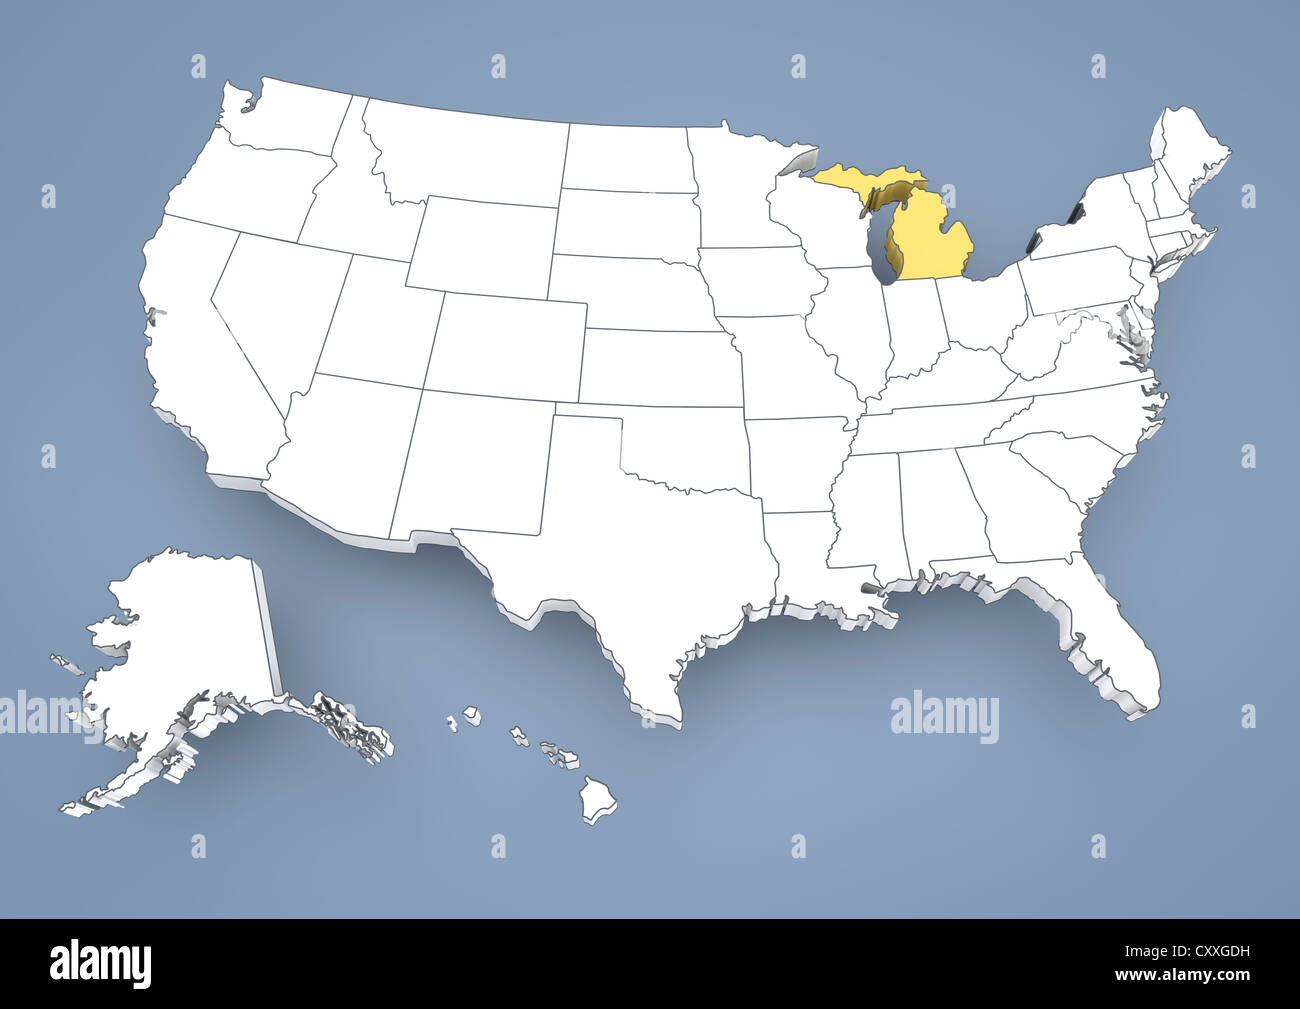 Michigan Mi Highlighted On A Contour Map Of Usa United States Of - Us-map-michigan-state